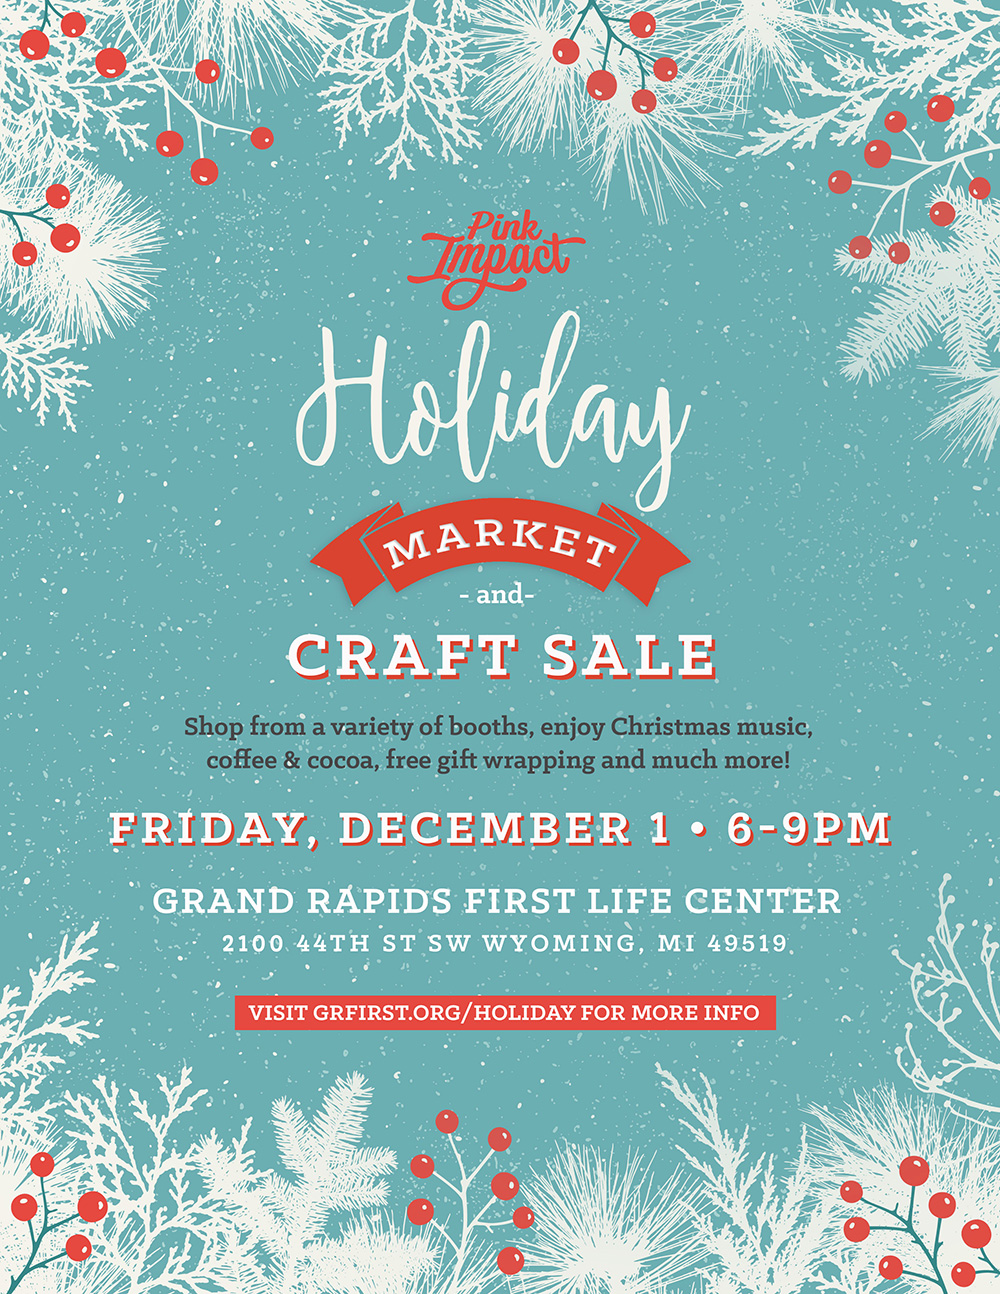 Holiday Market & Craft Sale